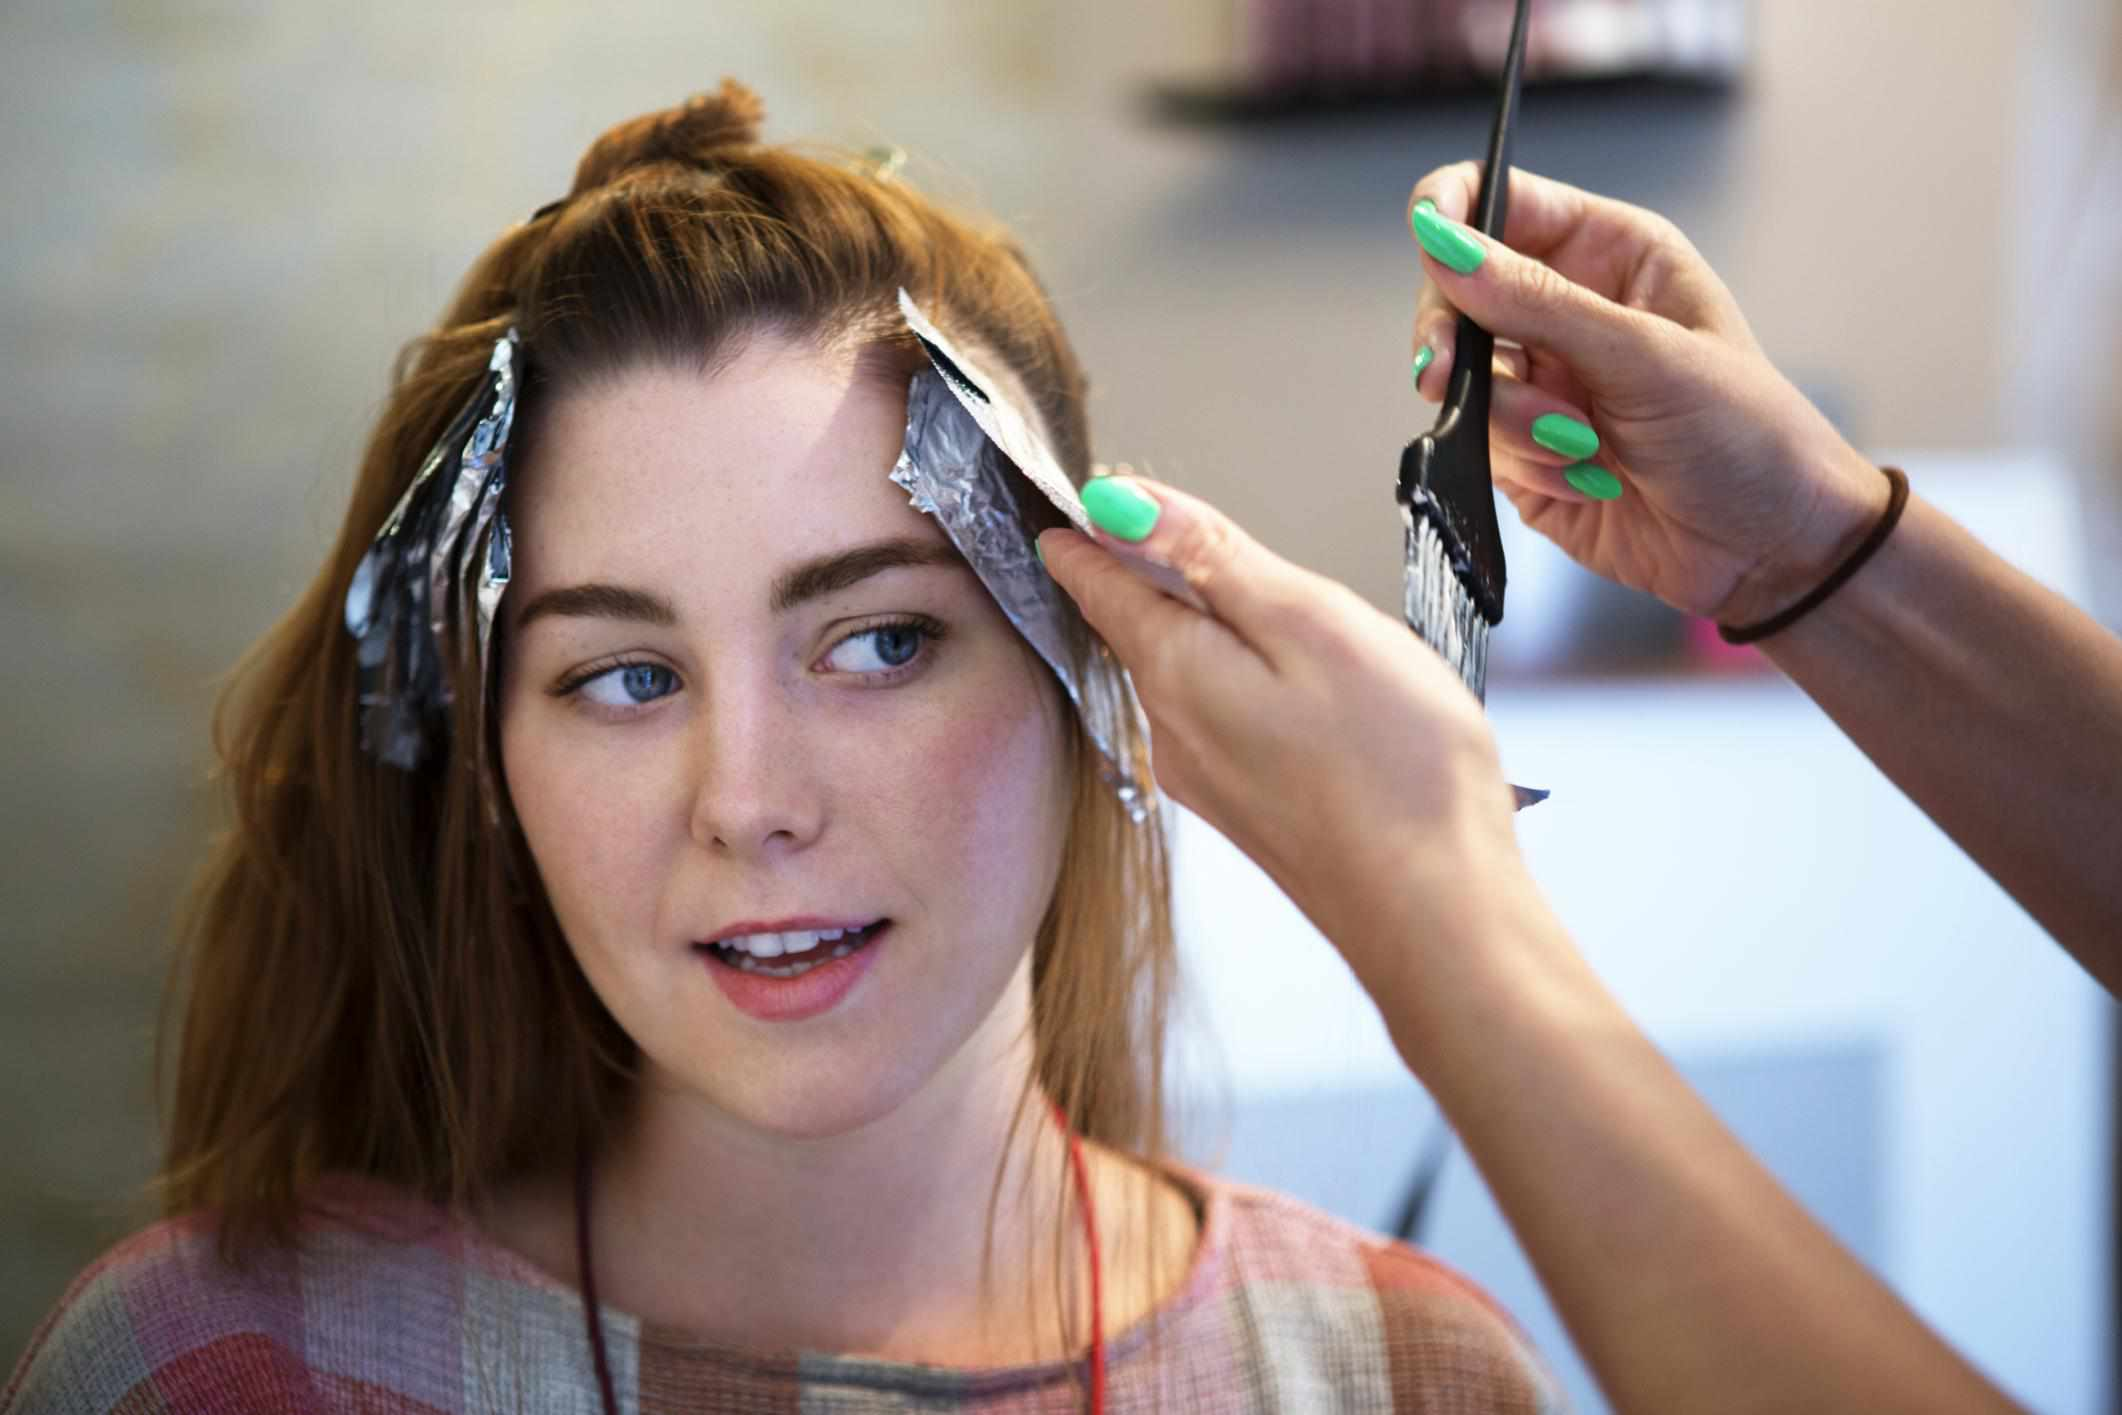 A woman getting her hair dyed with foils